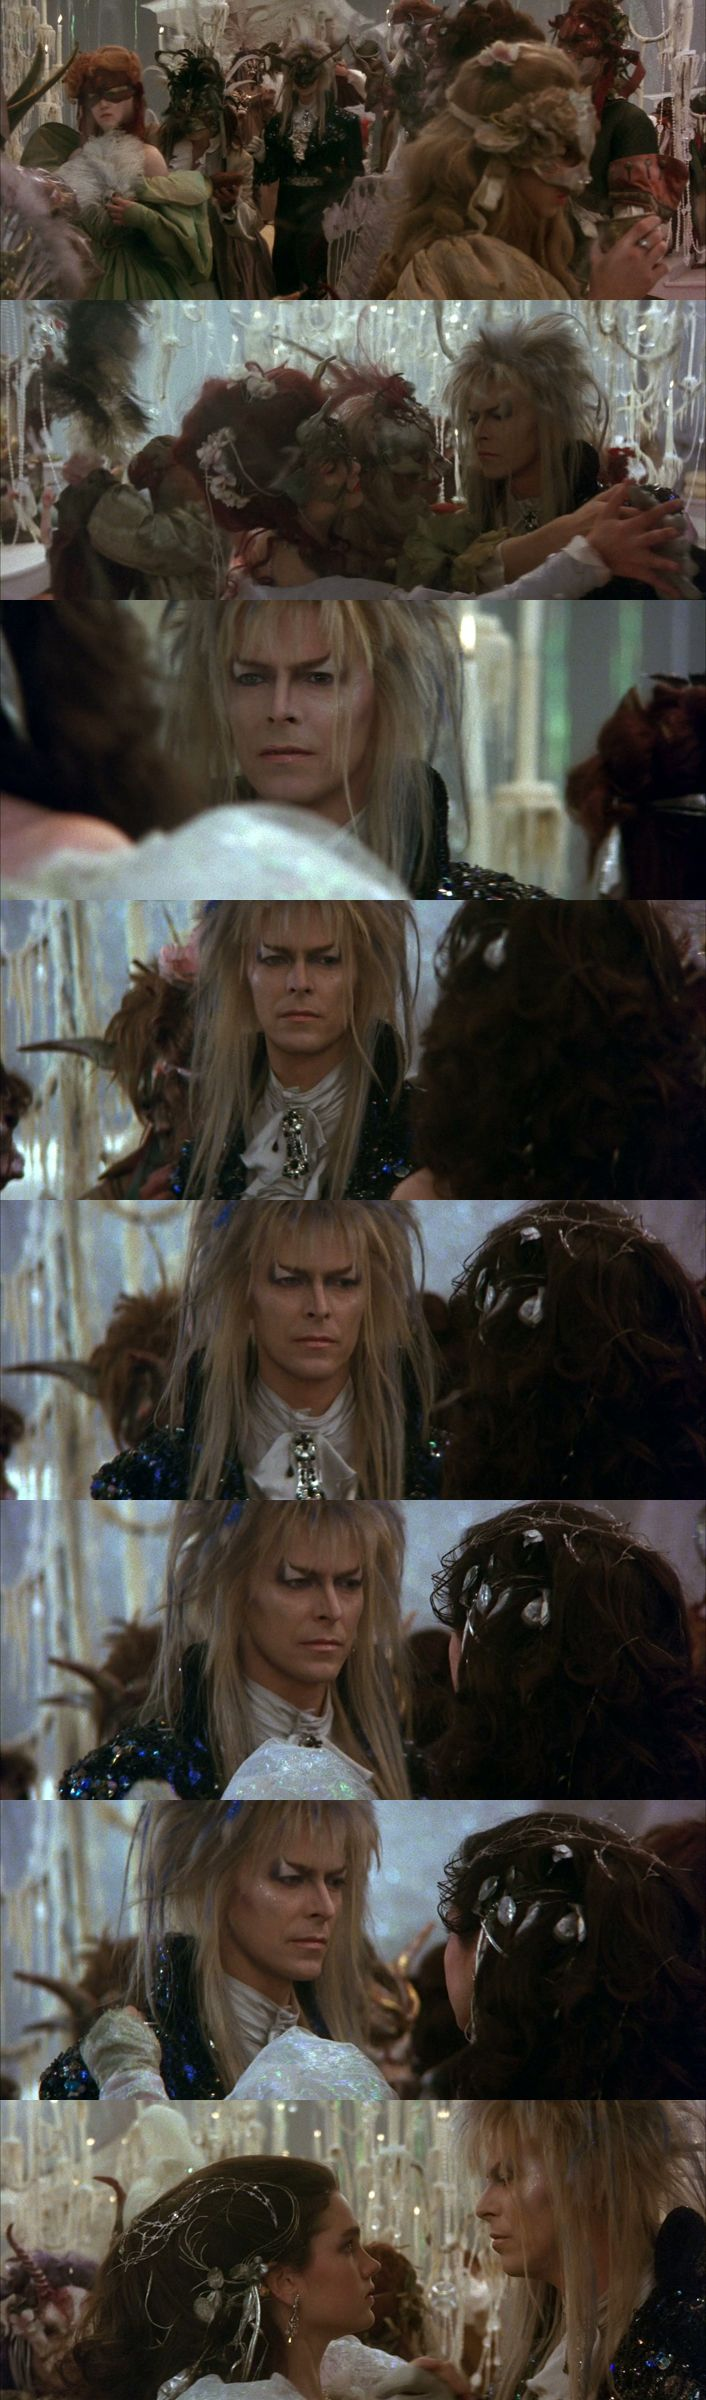 "Labyrinth (1986): Sarah (Jennifer Connelly) and Jareth, the Goblin King (David Bowie), dancing in the ball scene on the music ""As the world falls down"" (sung by David Bowie)."